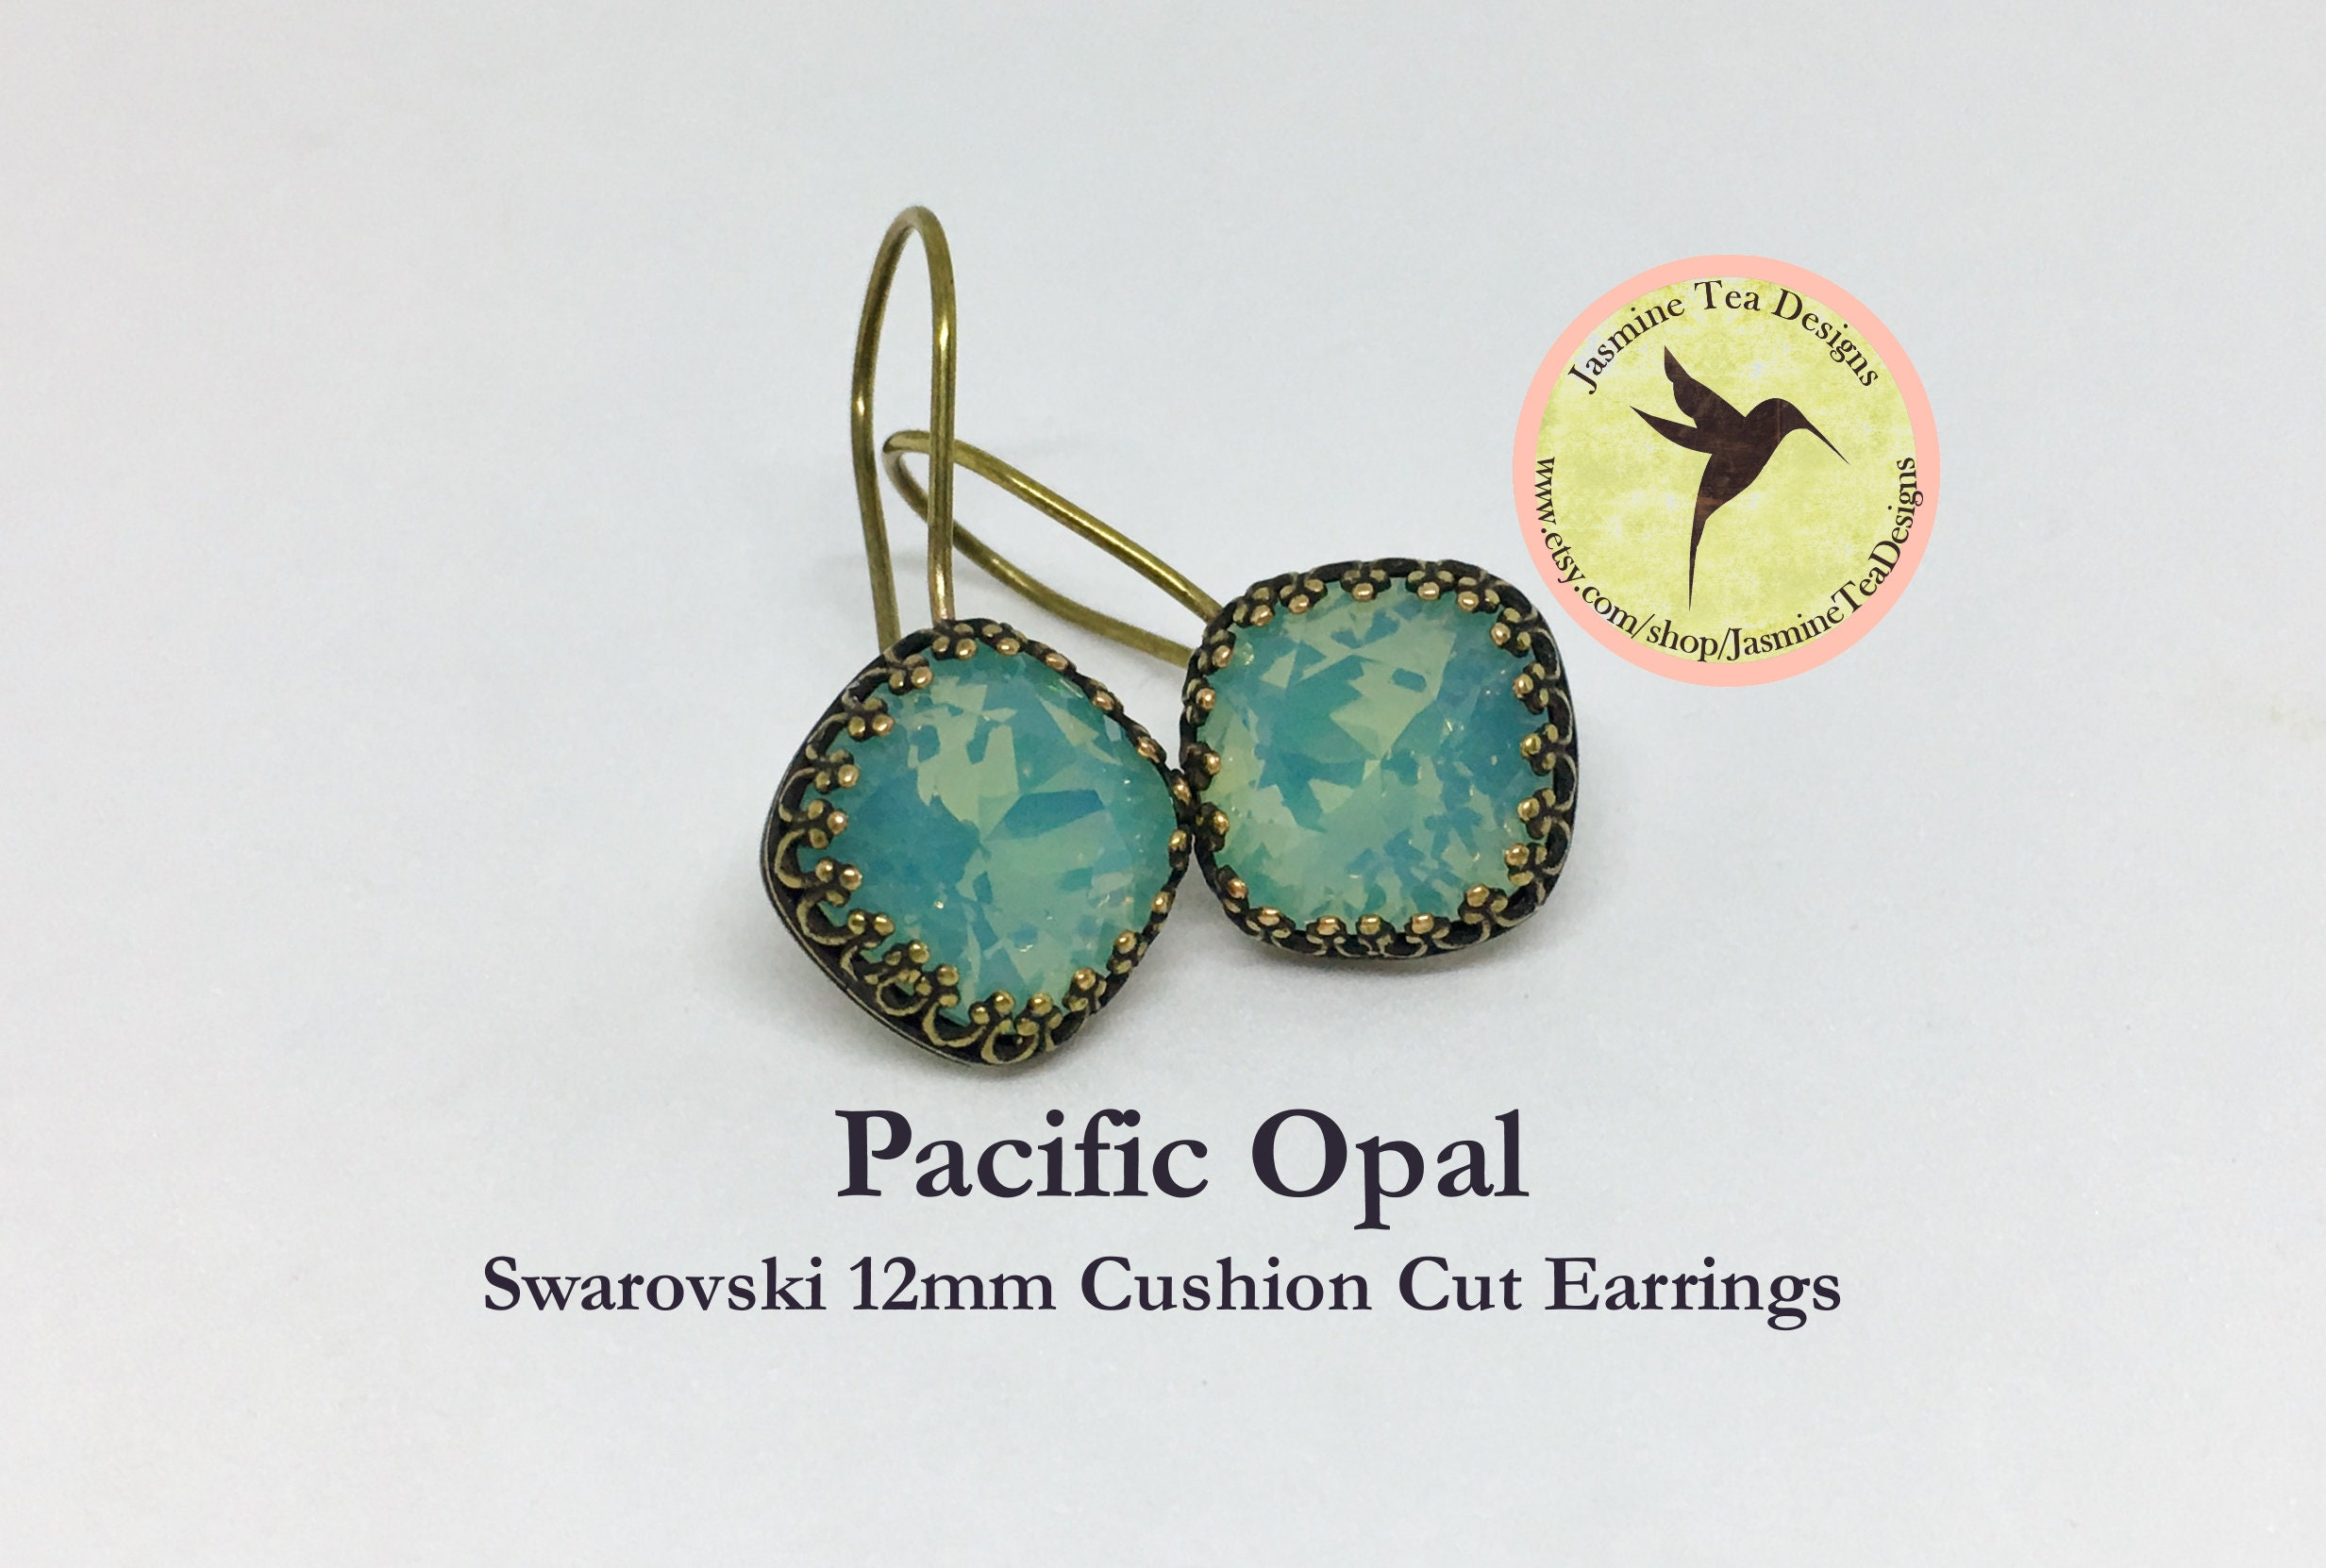 4486808598346 12mm Cushion Cut Swarovski Pacific Opal Earrings, In A Vintage ...